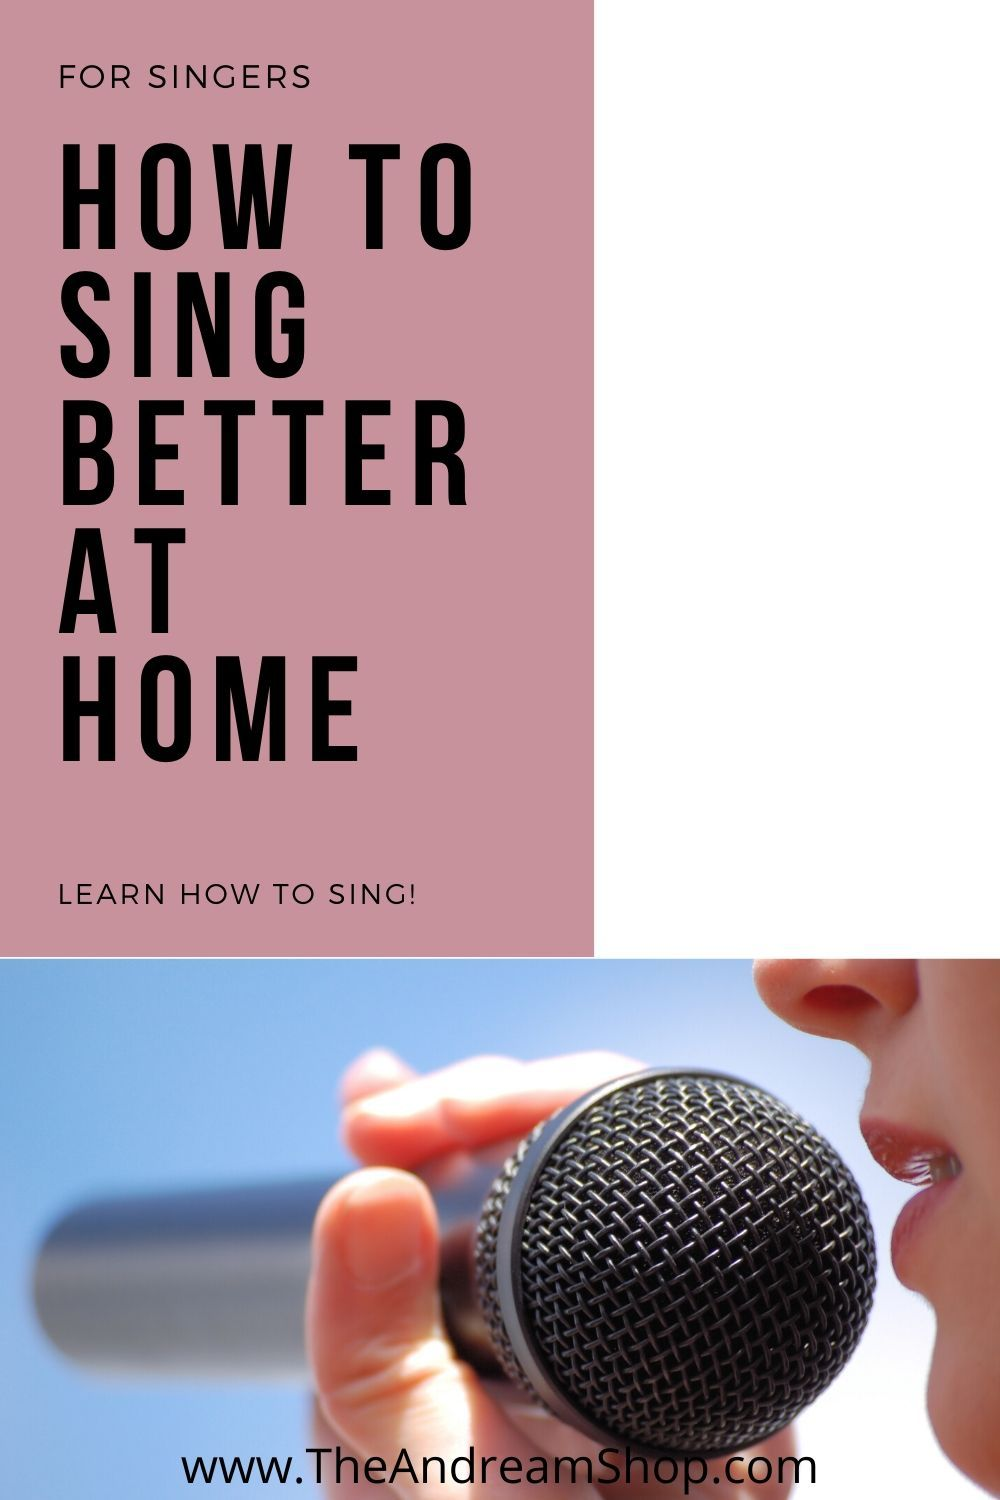 How To Learn To Sing Better At Home In 2020 In 2020 Singing Course Singing Tips Singing